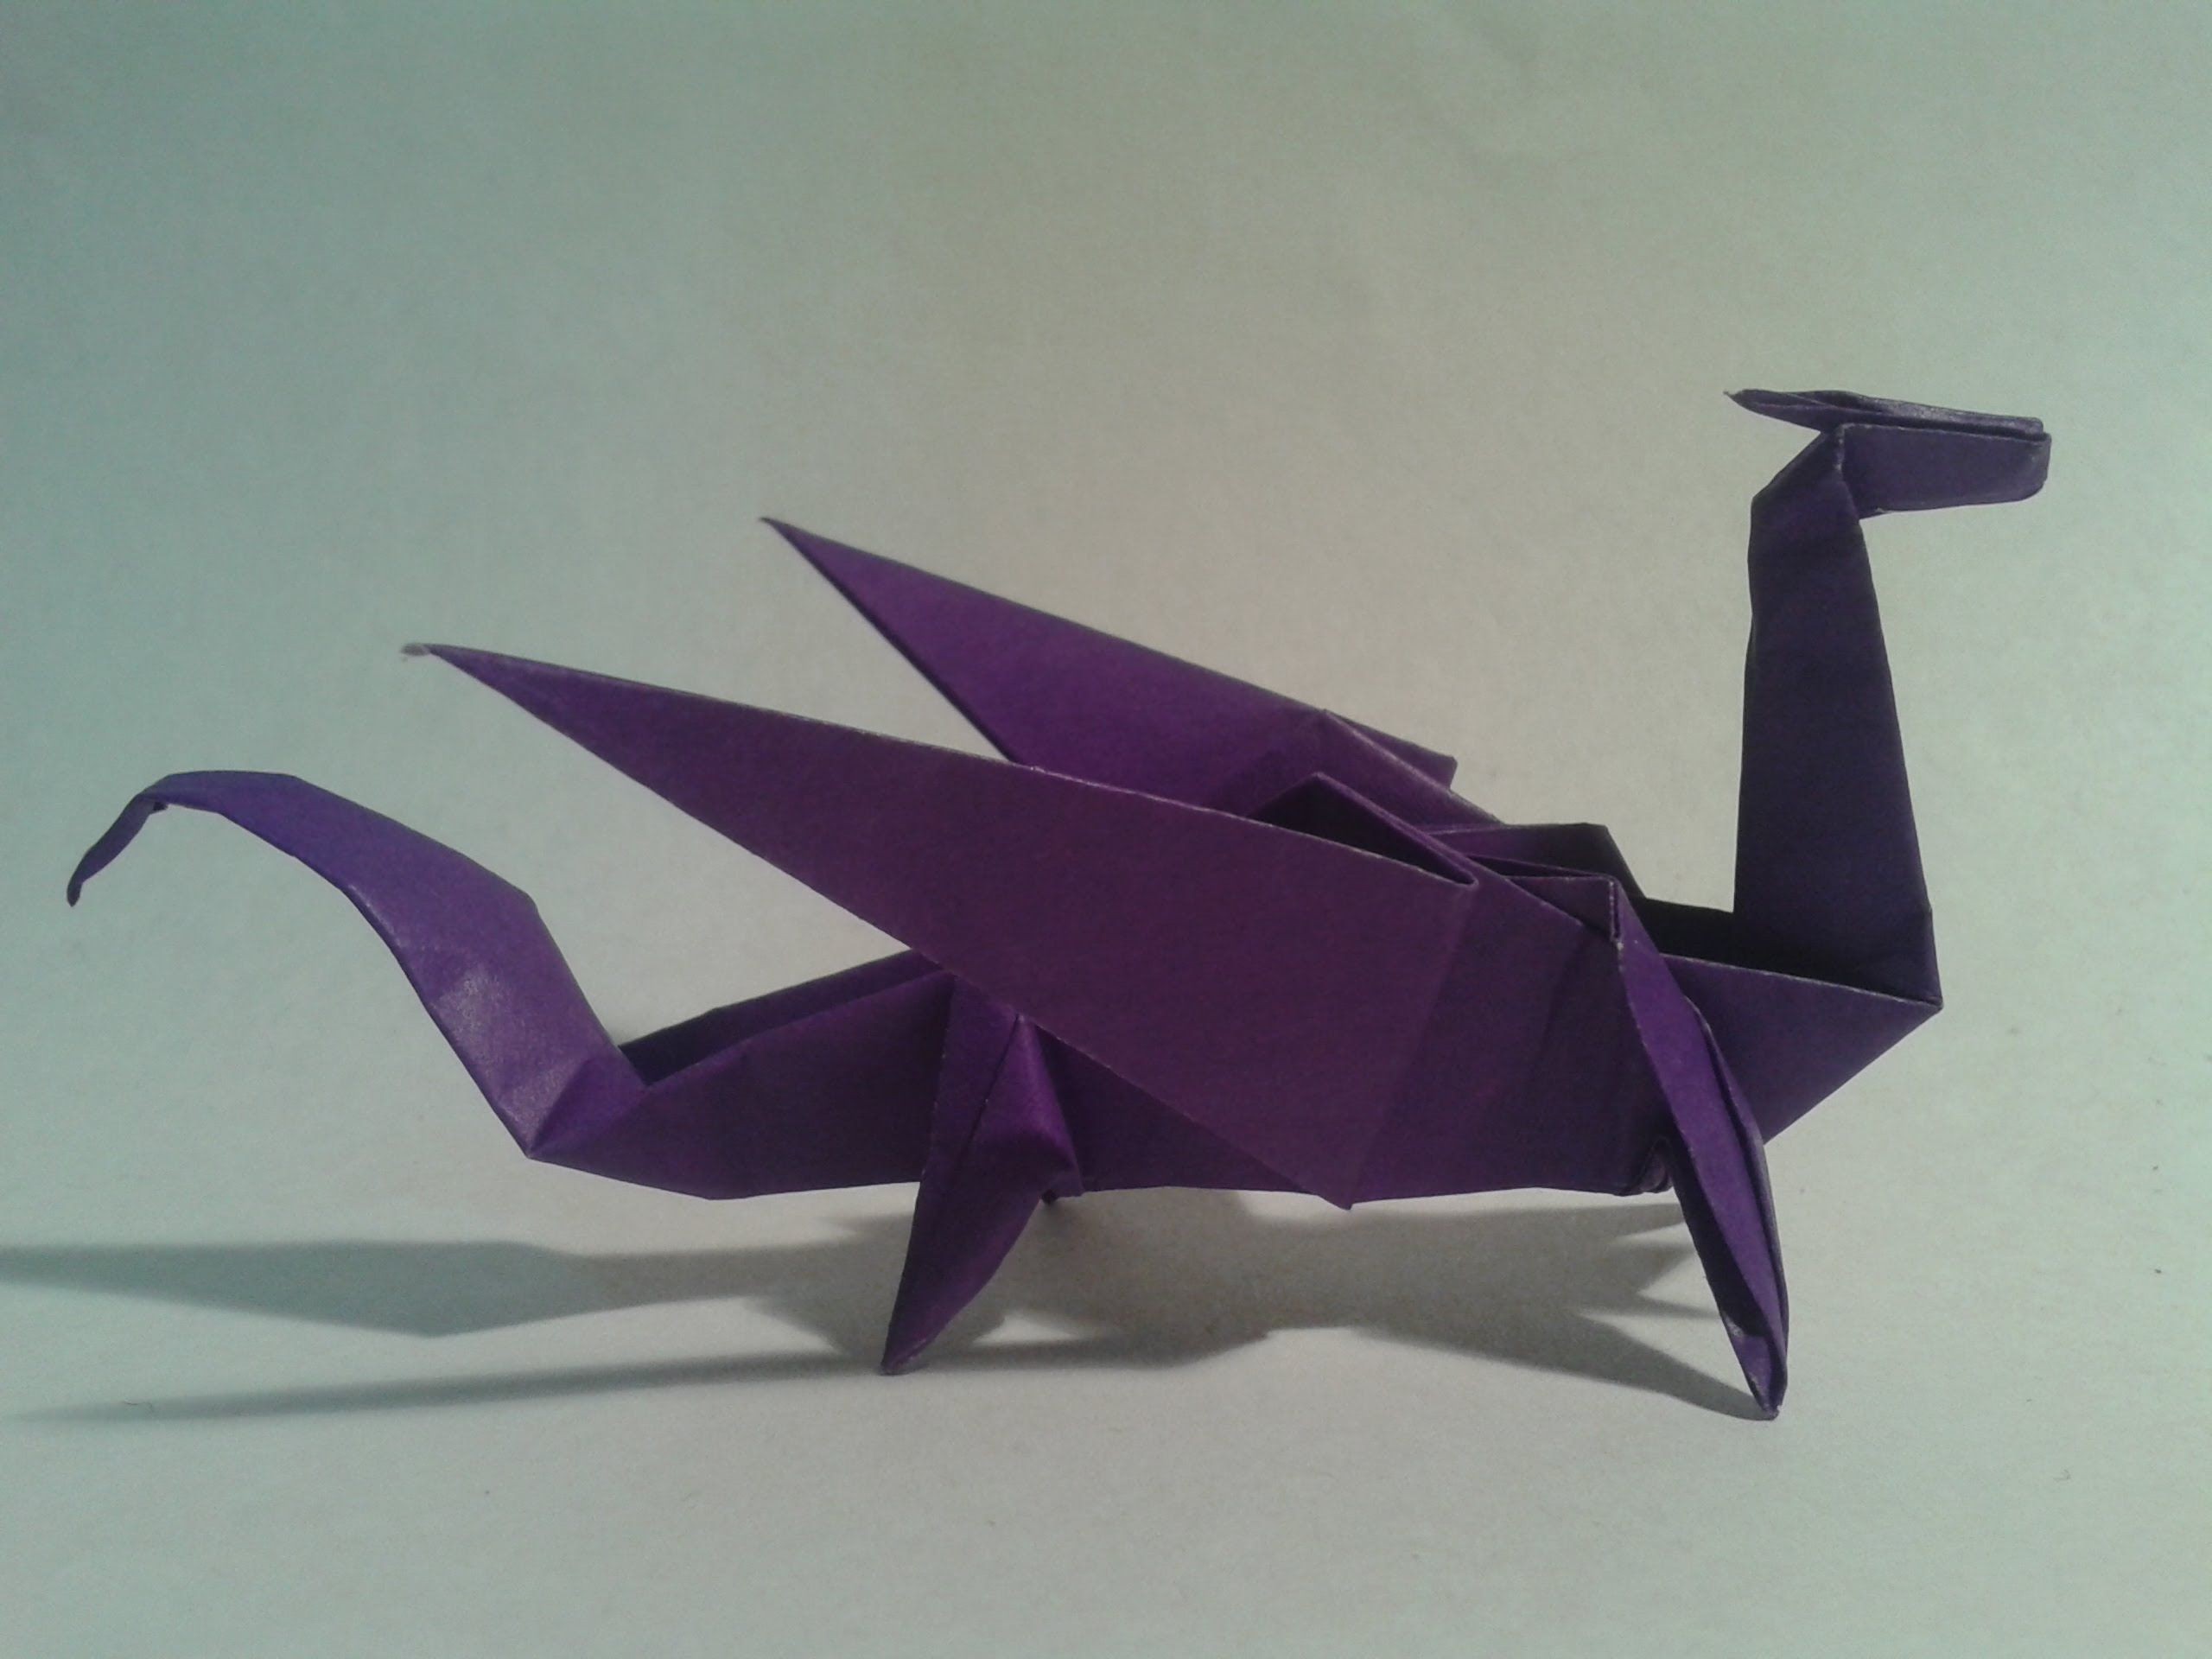 Make an origami dragon origami dragon easy origami and origami origami paper jeuxipadfo Image collections